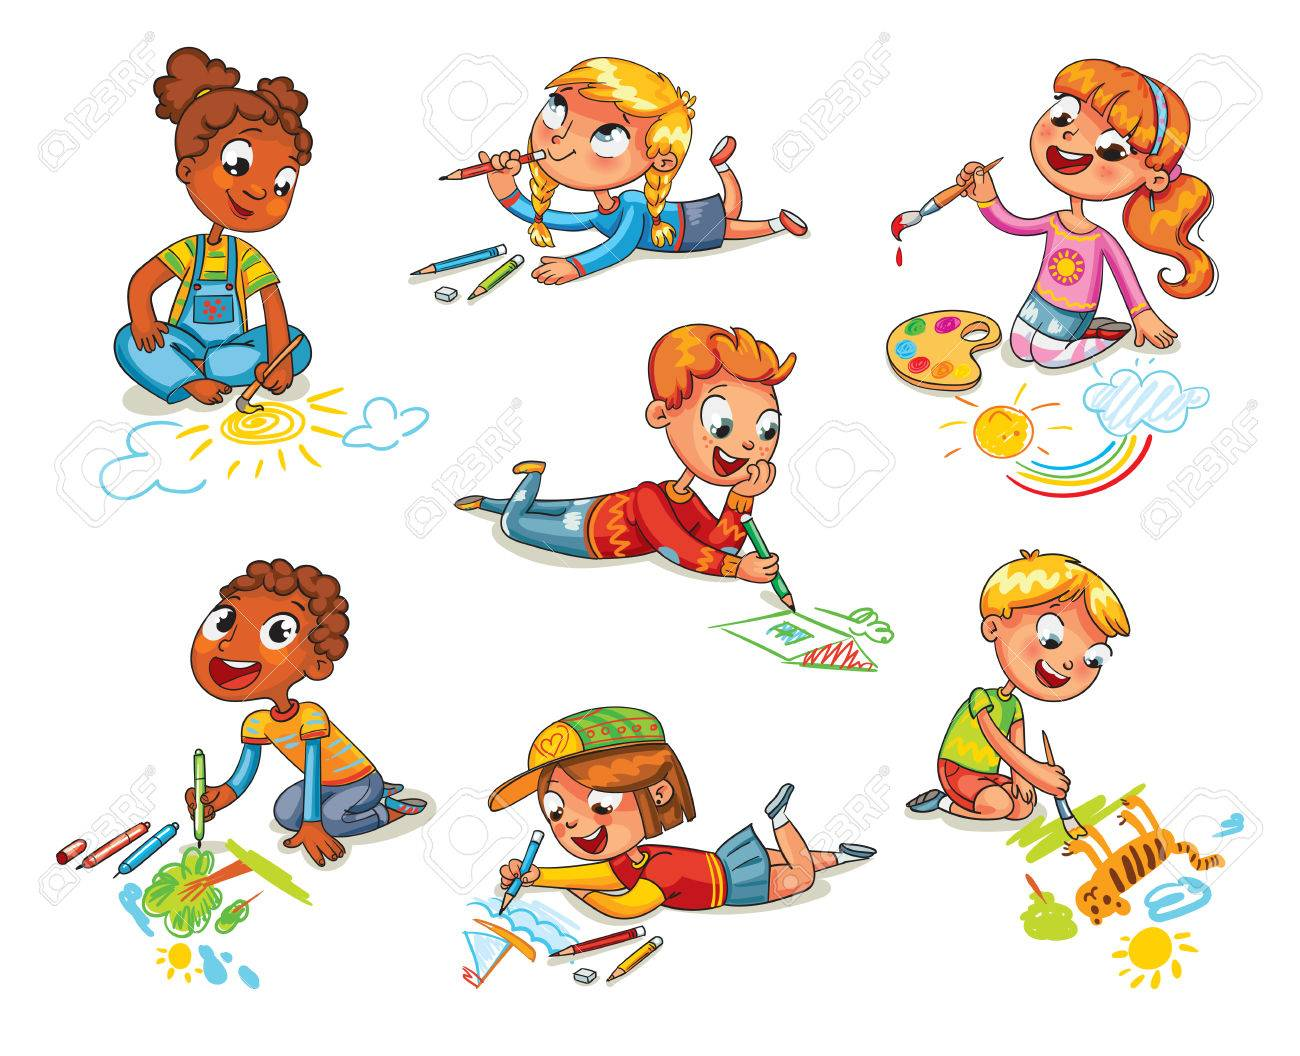 Little children draw pictures pencils and paints laying on floor. Kid lying on her stomach and making a drawing on a paper. Funny cartoon character. Vector illustration. Isolated on white background - 69019176